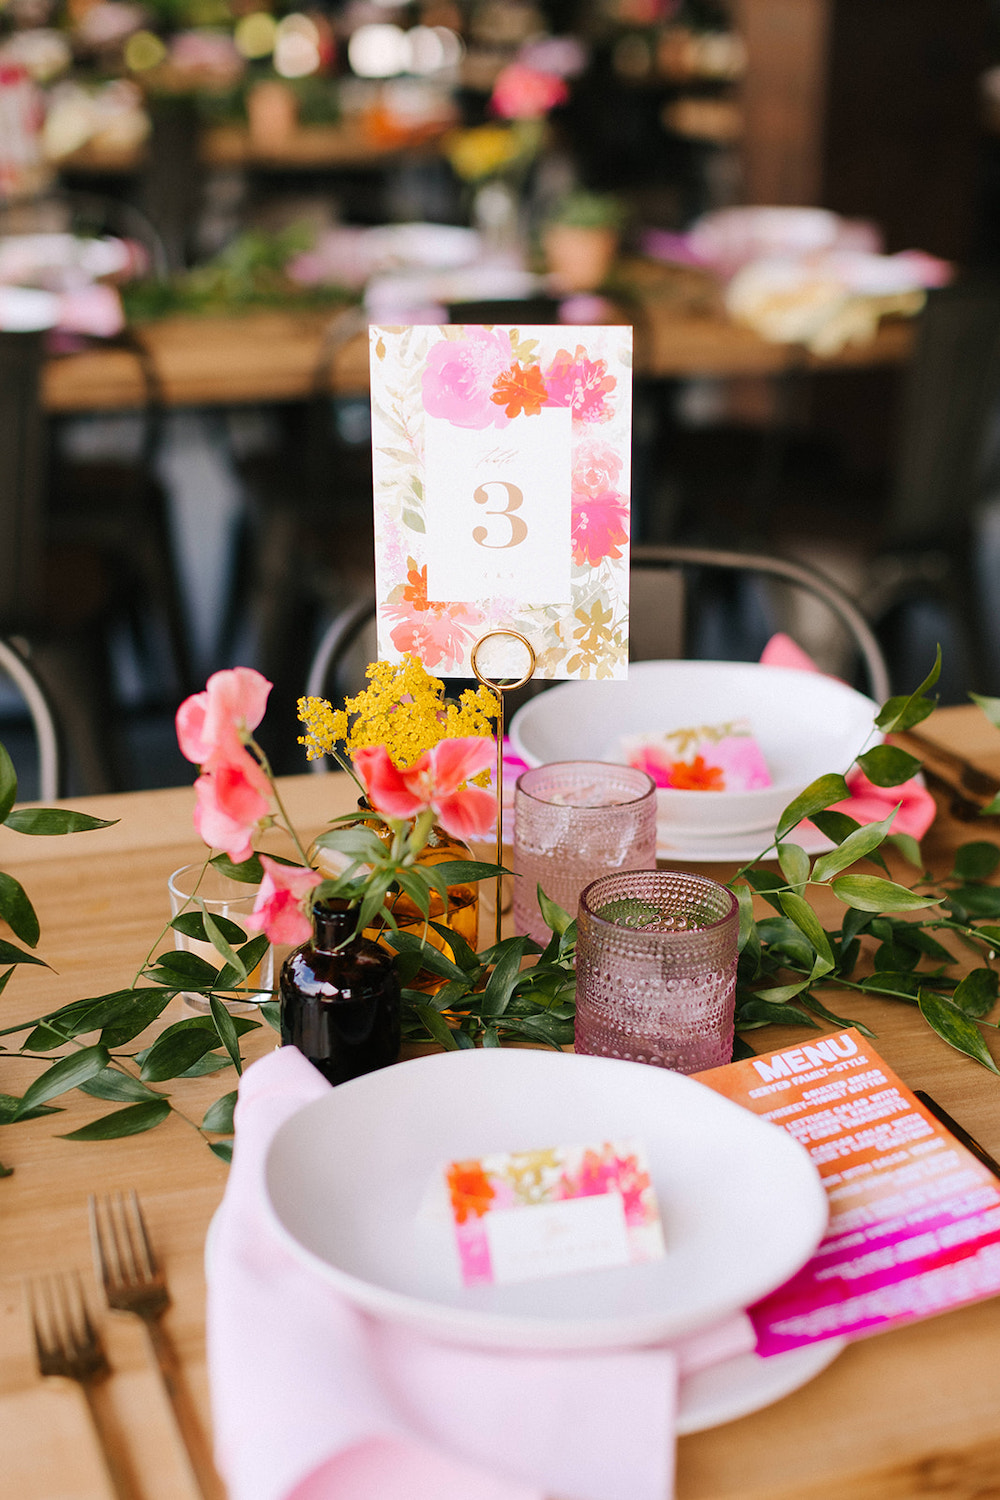 Neon Pink Place Setting